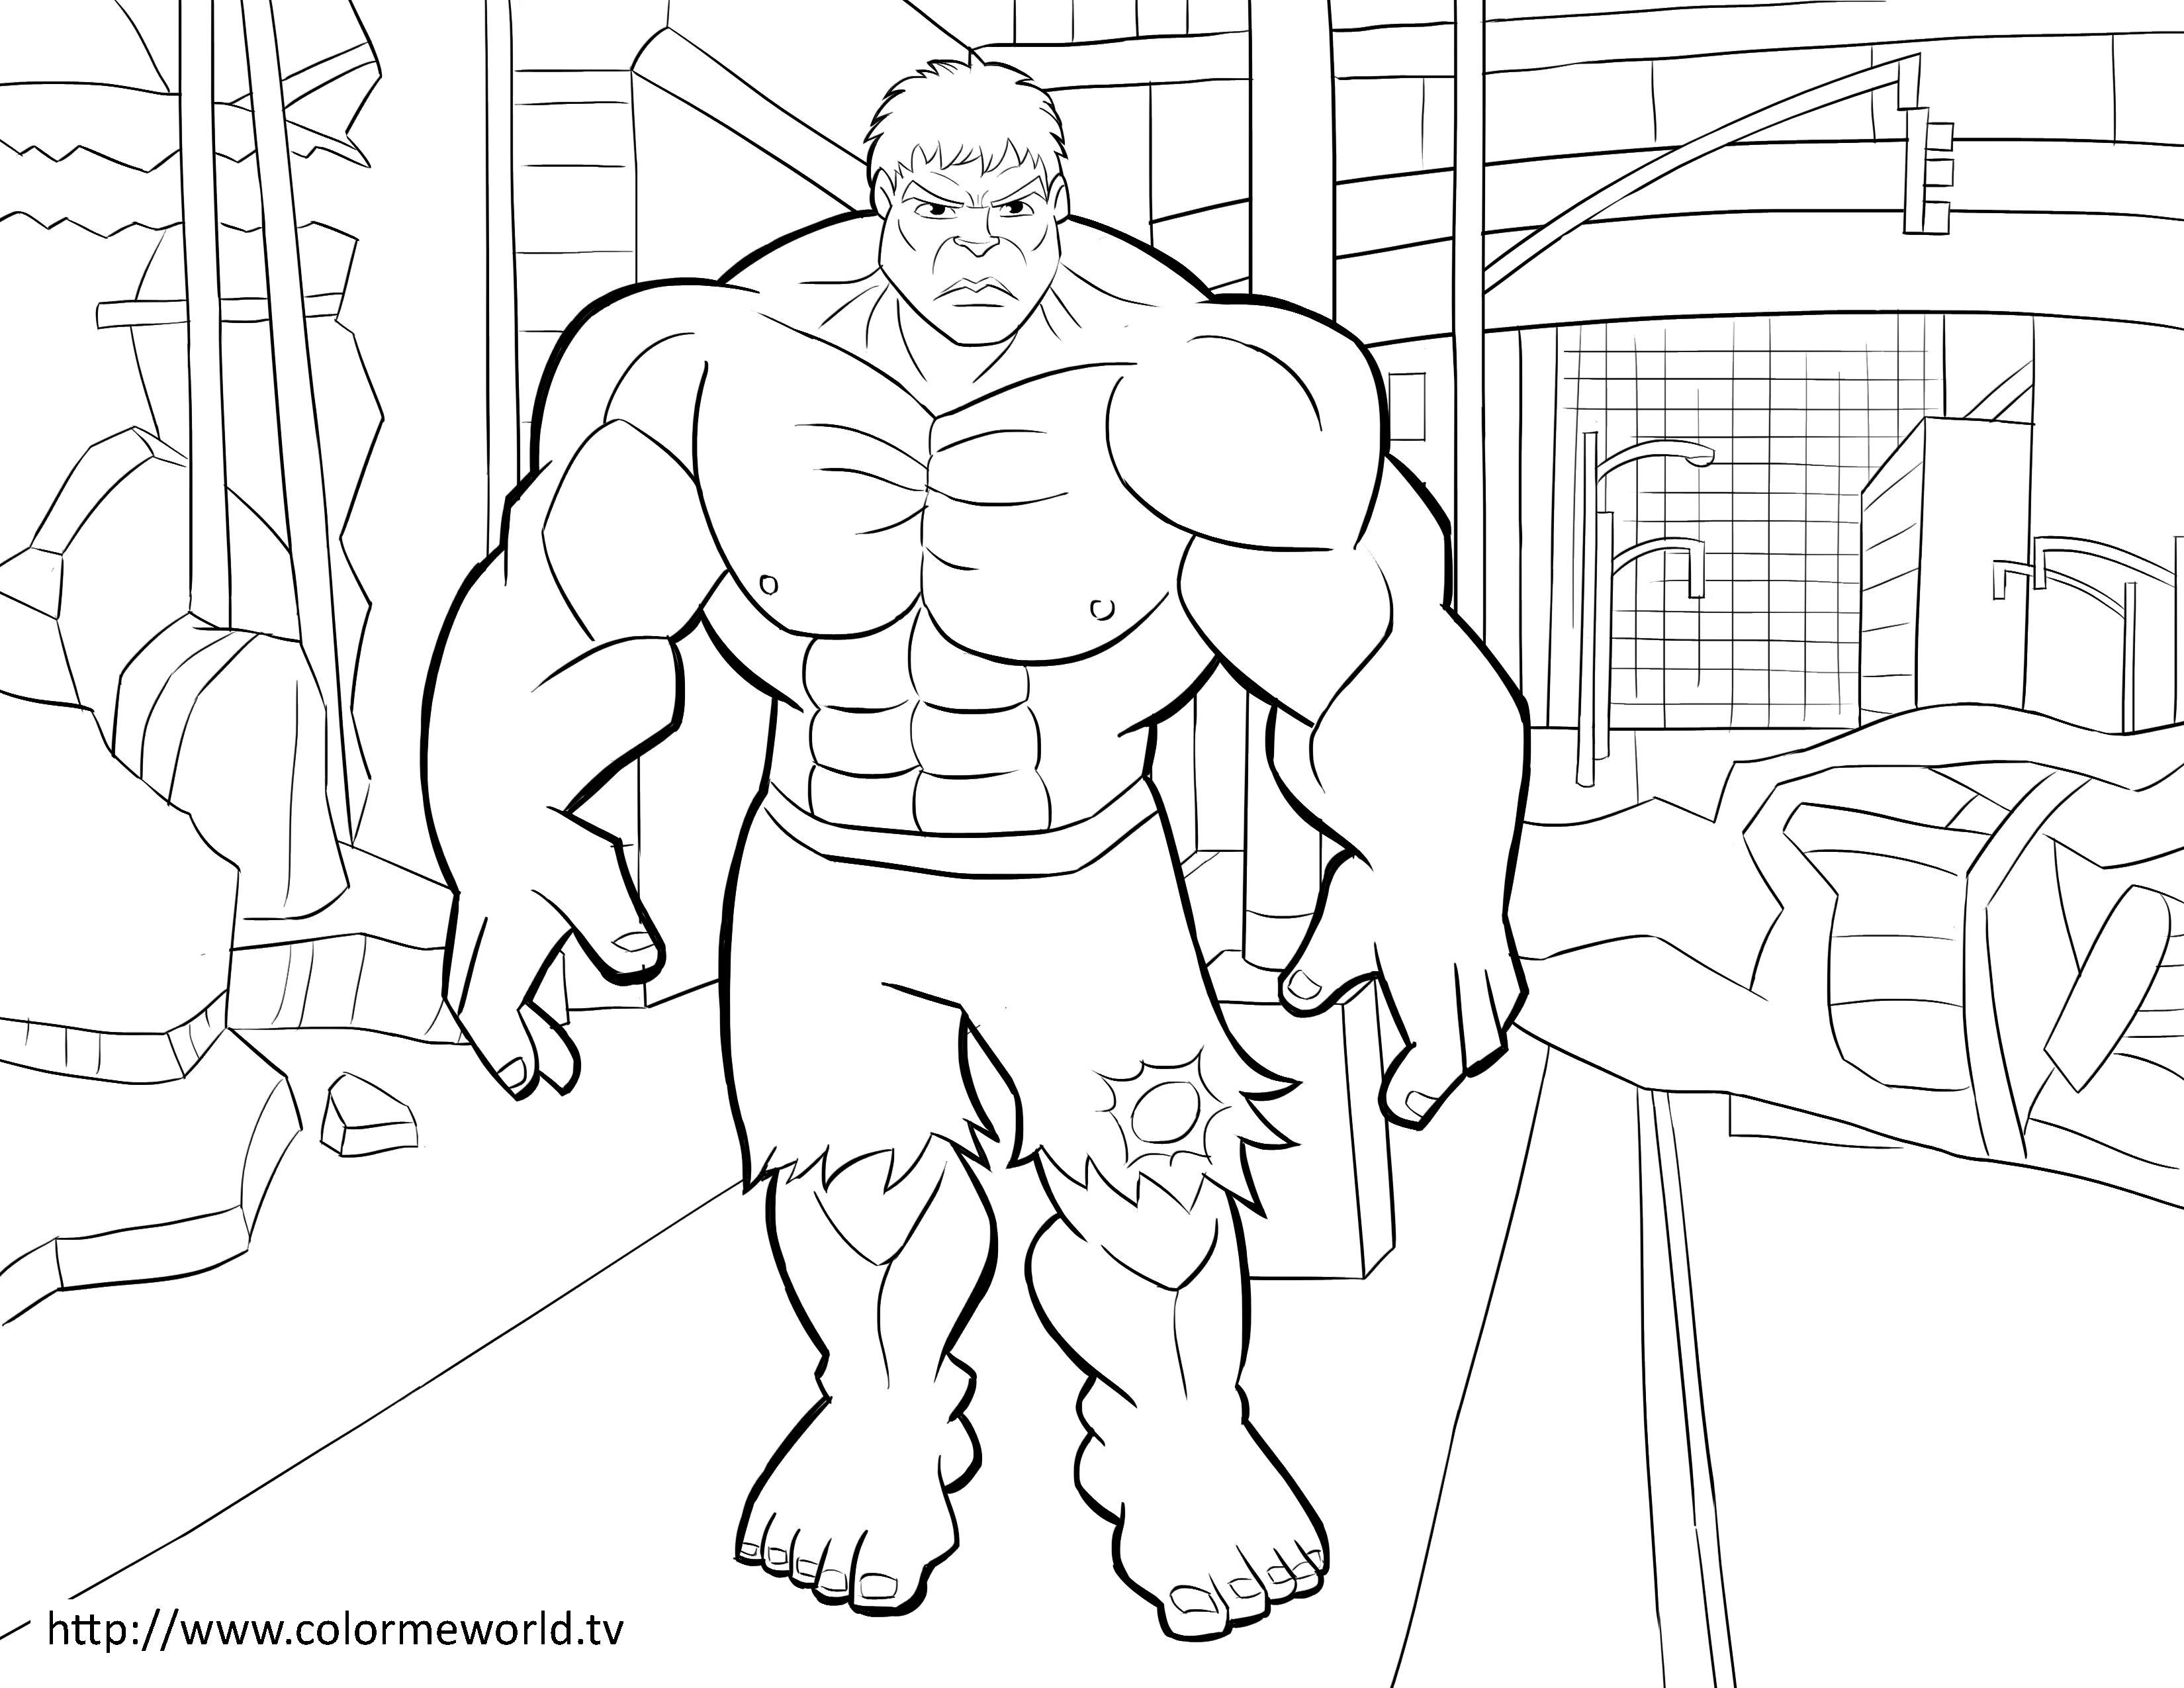 Coloring Pages For Boys Marvel  Pdf Coloring Pages For Kids